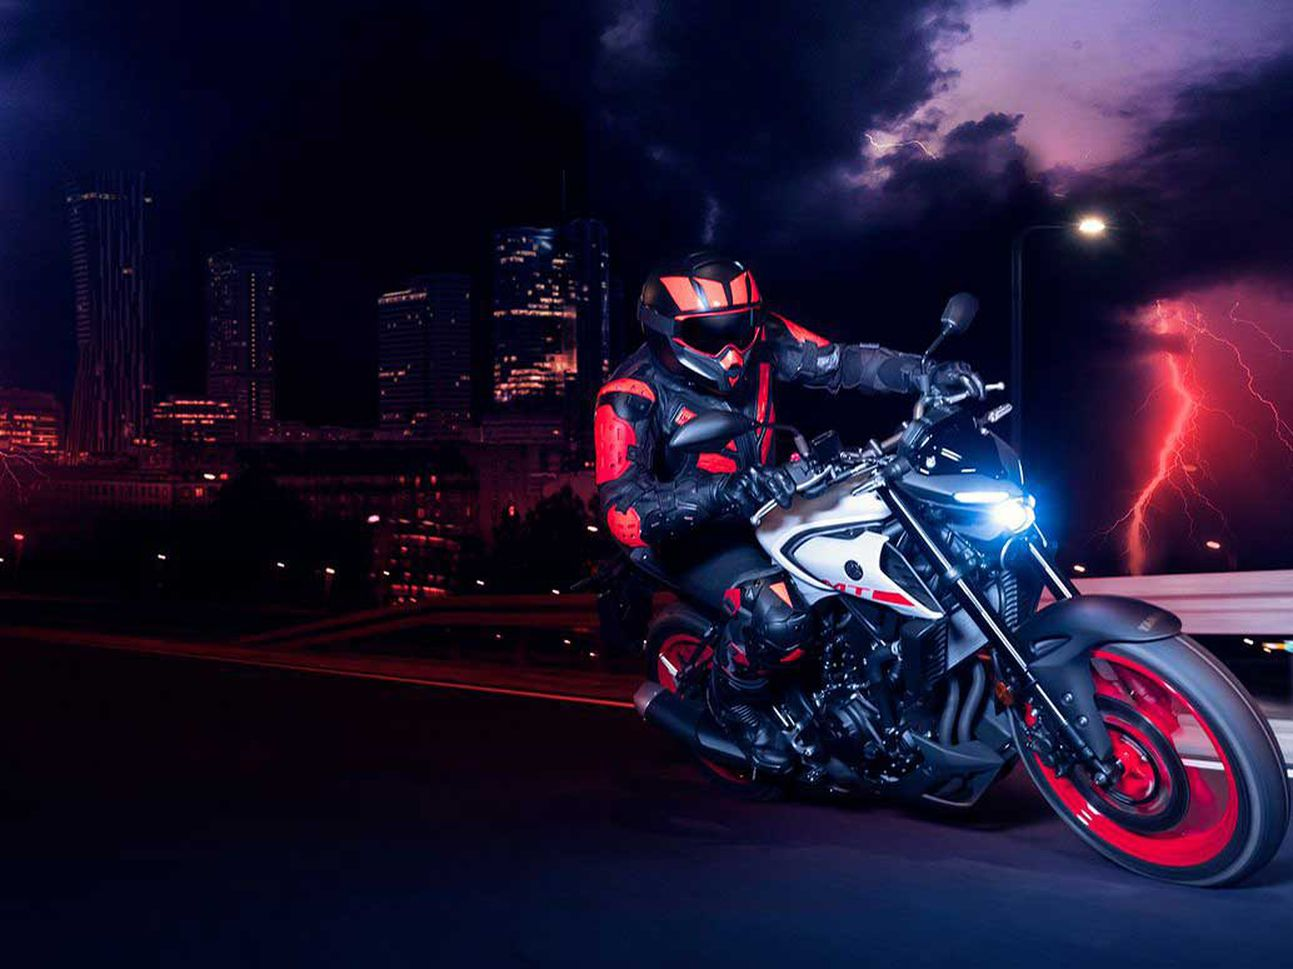 For entry-level riders the Yamaha MT-03 is likely to be an enticing prospect.